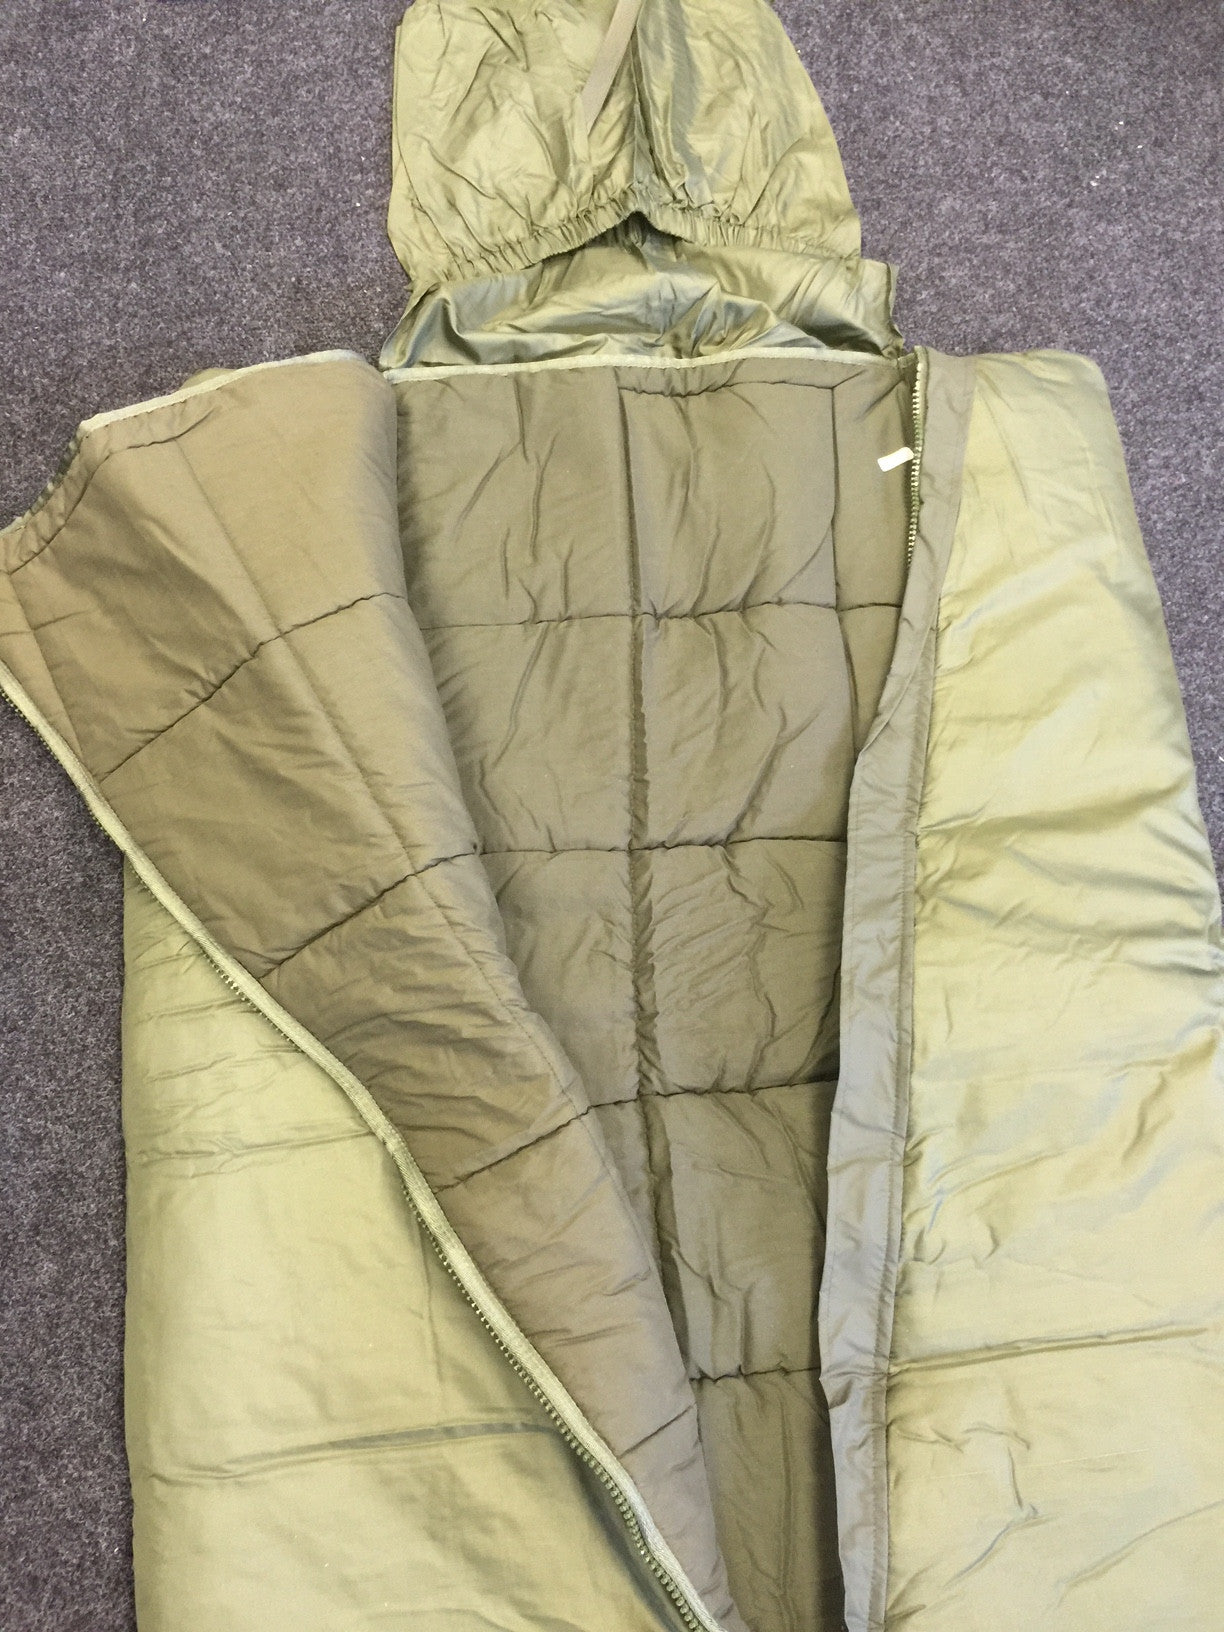 French army surplus sleeping bag with waterproof base - NEW and UNISSUED